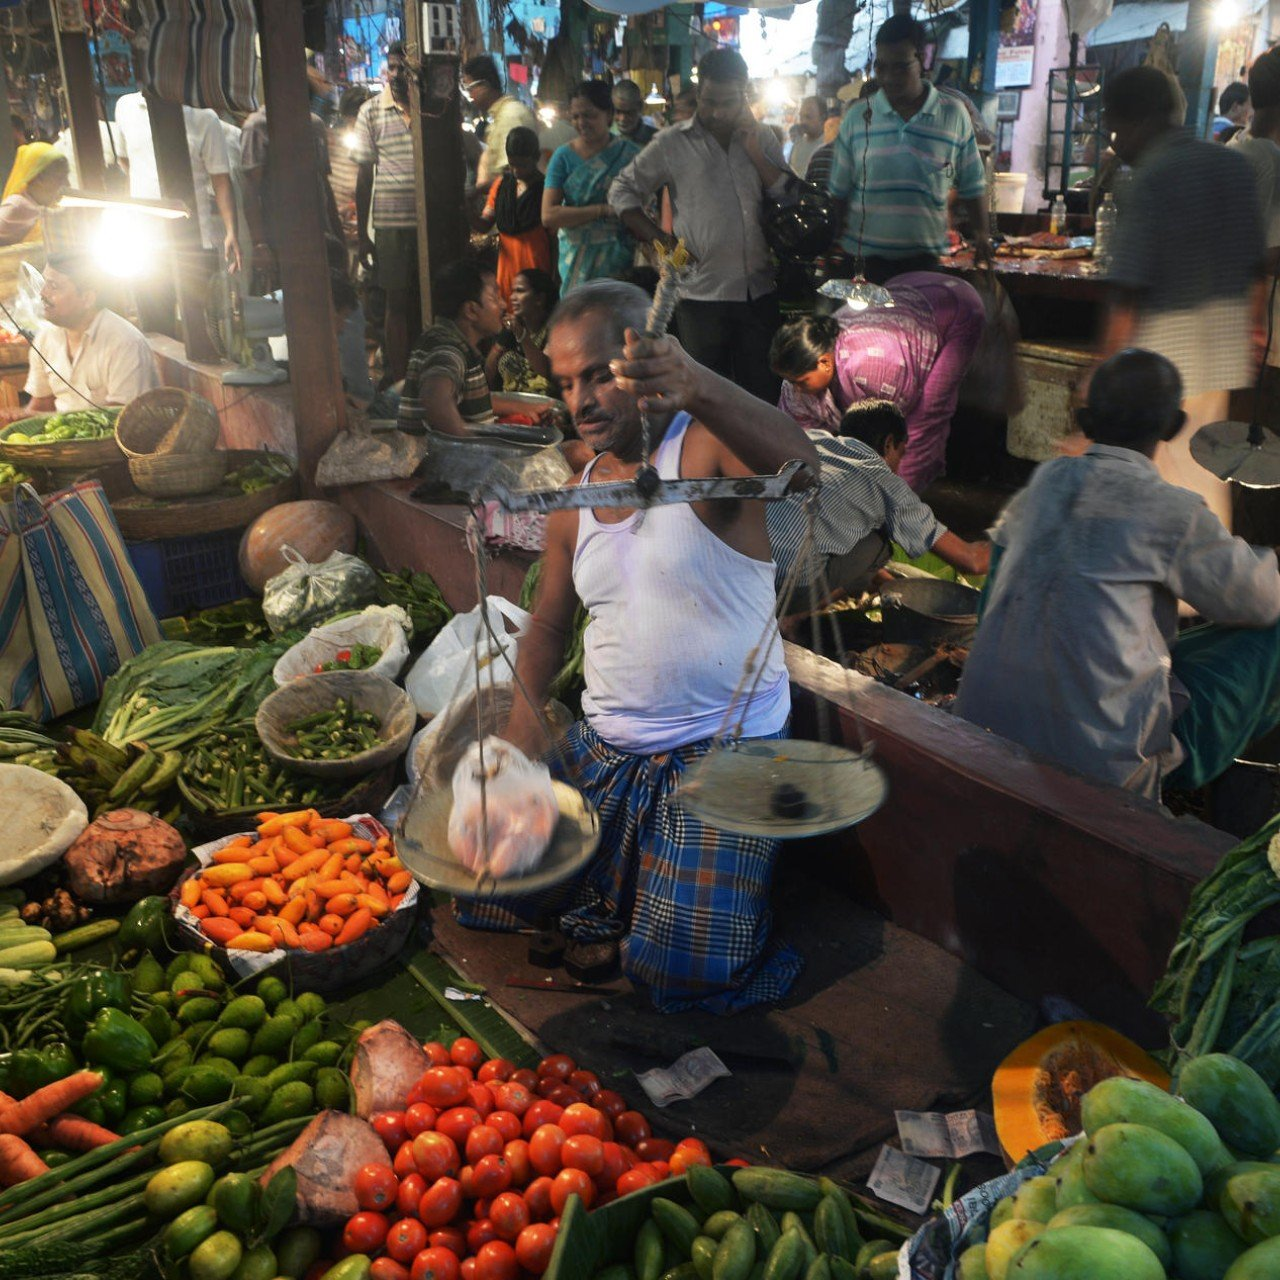 In India, caste system ensures you are what you eat | South